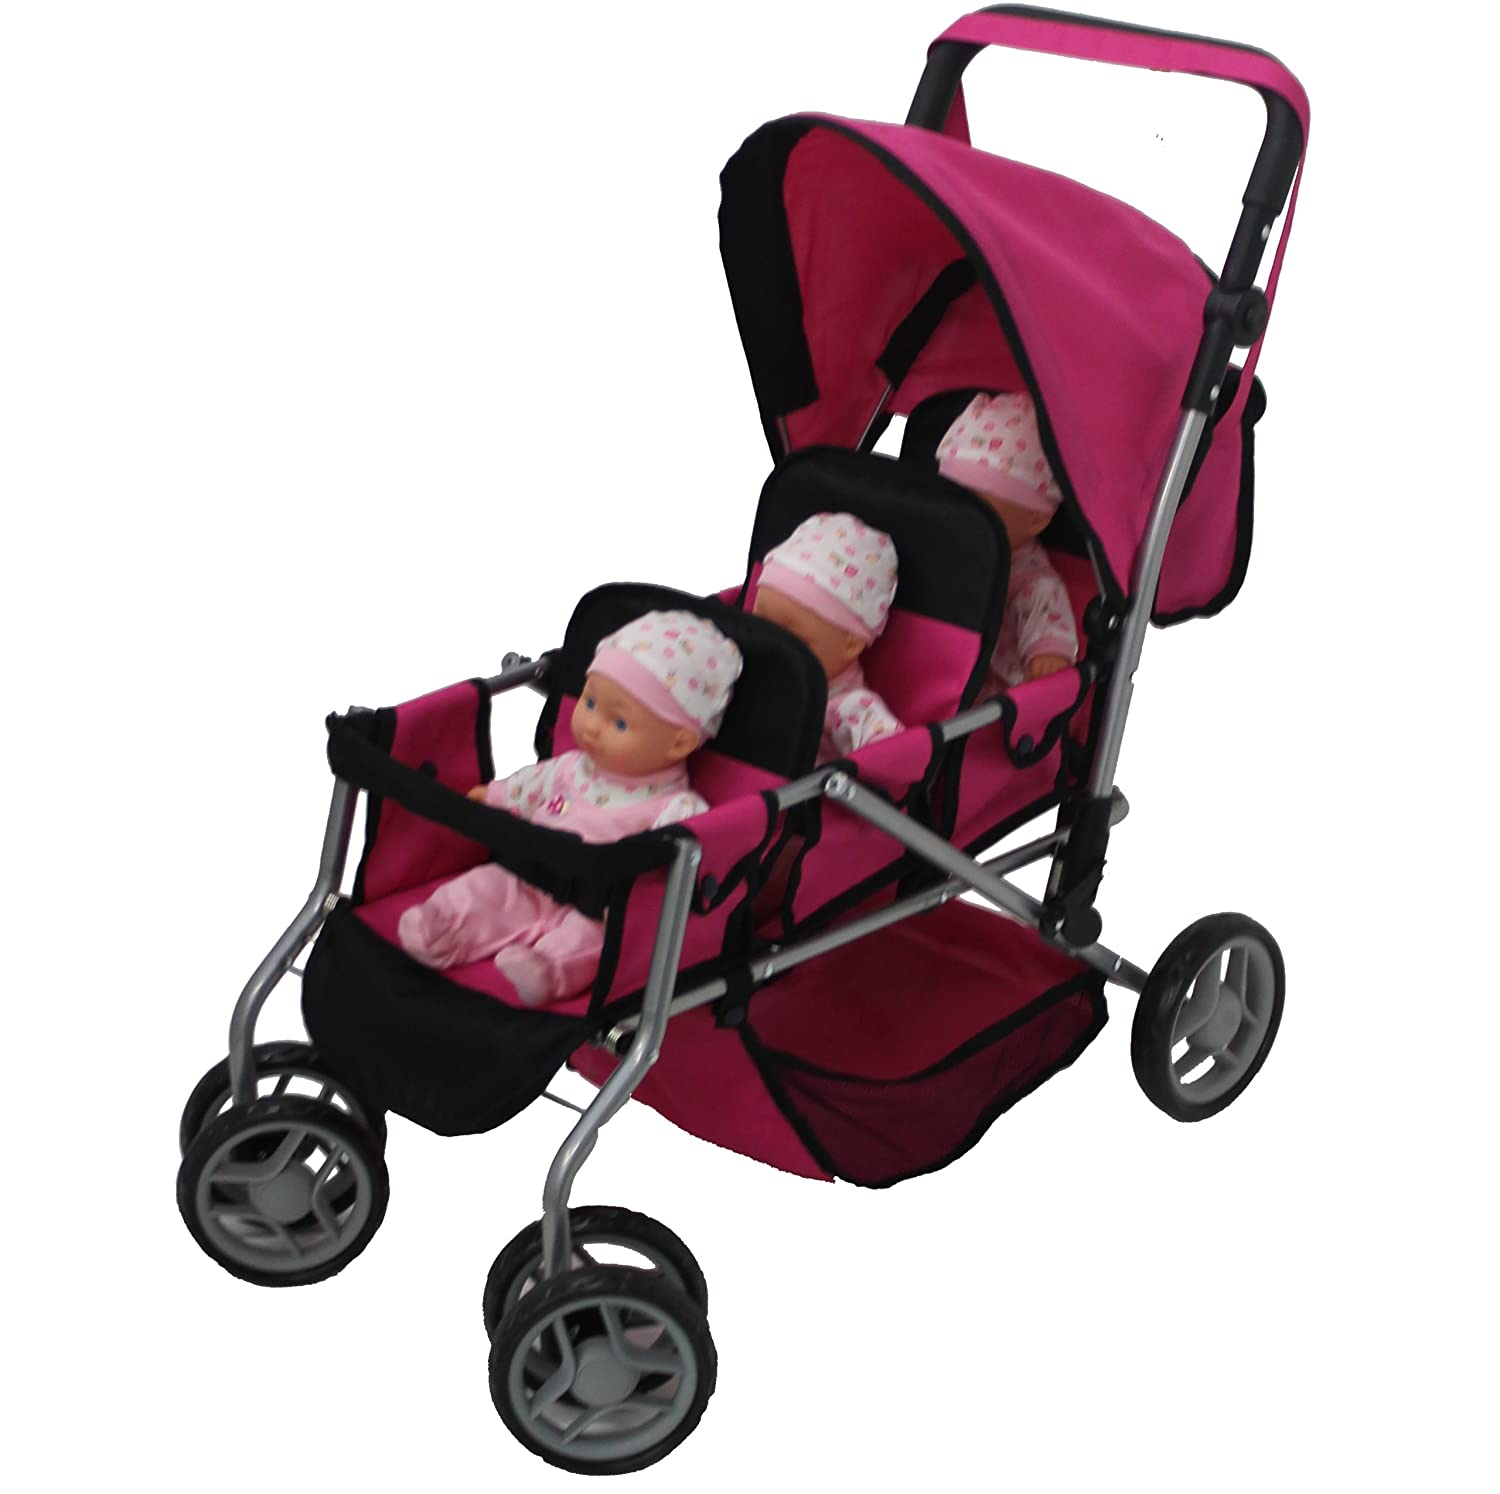 Amazon.com: Mommy & Me TRIPLET Doll Pram Back to Back with Swiveling ...